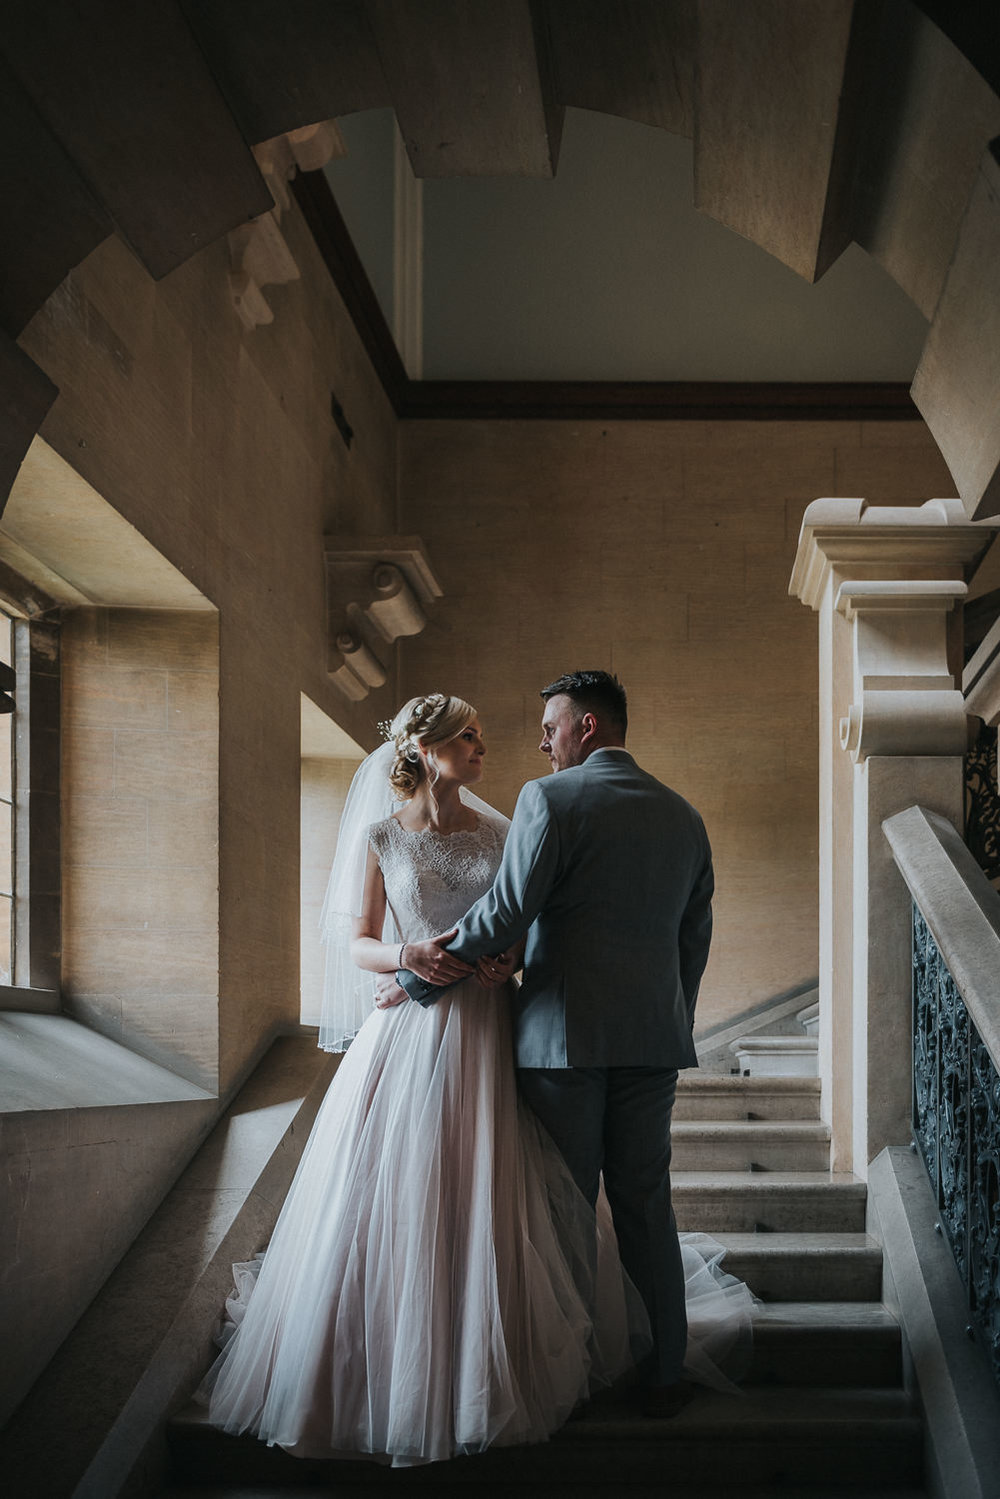 Bride and groom at Harlaxton Manor wedding